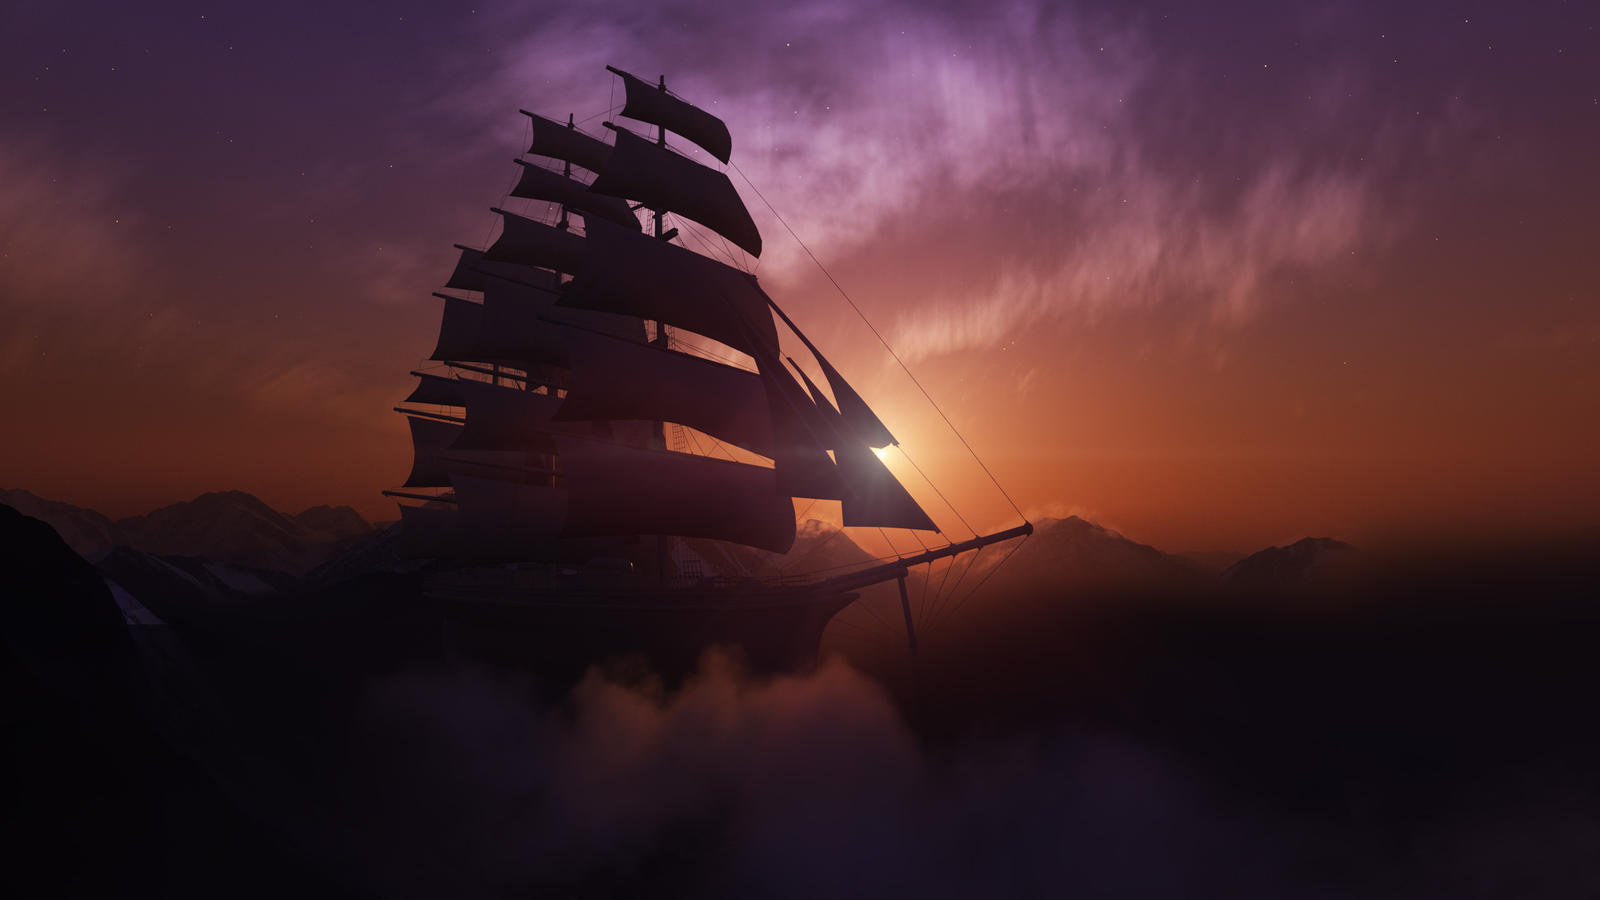 Uncharted seas by Smattila